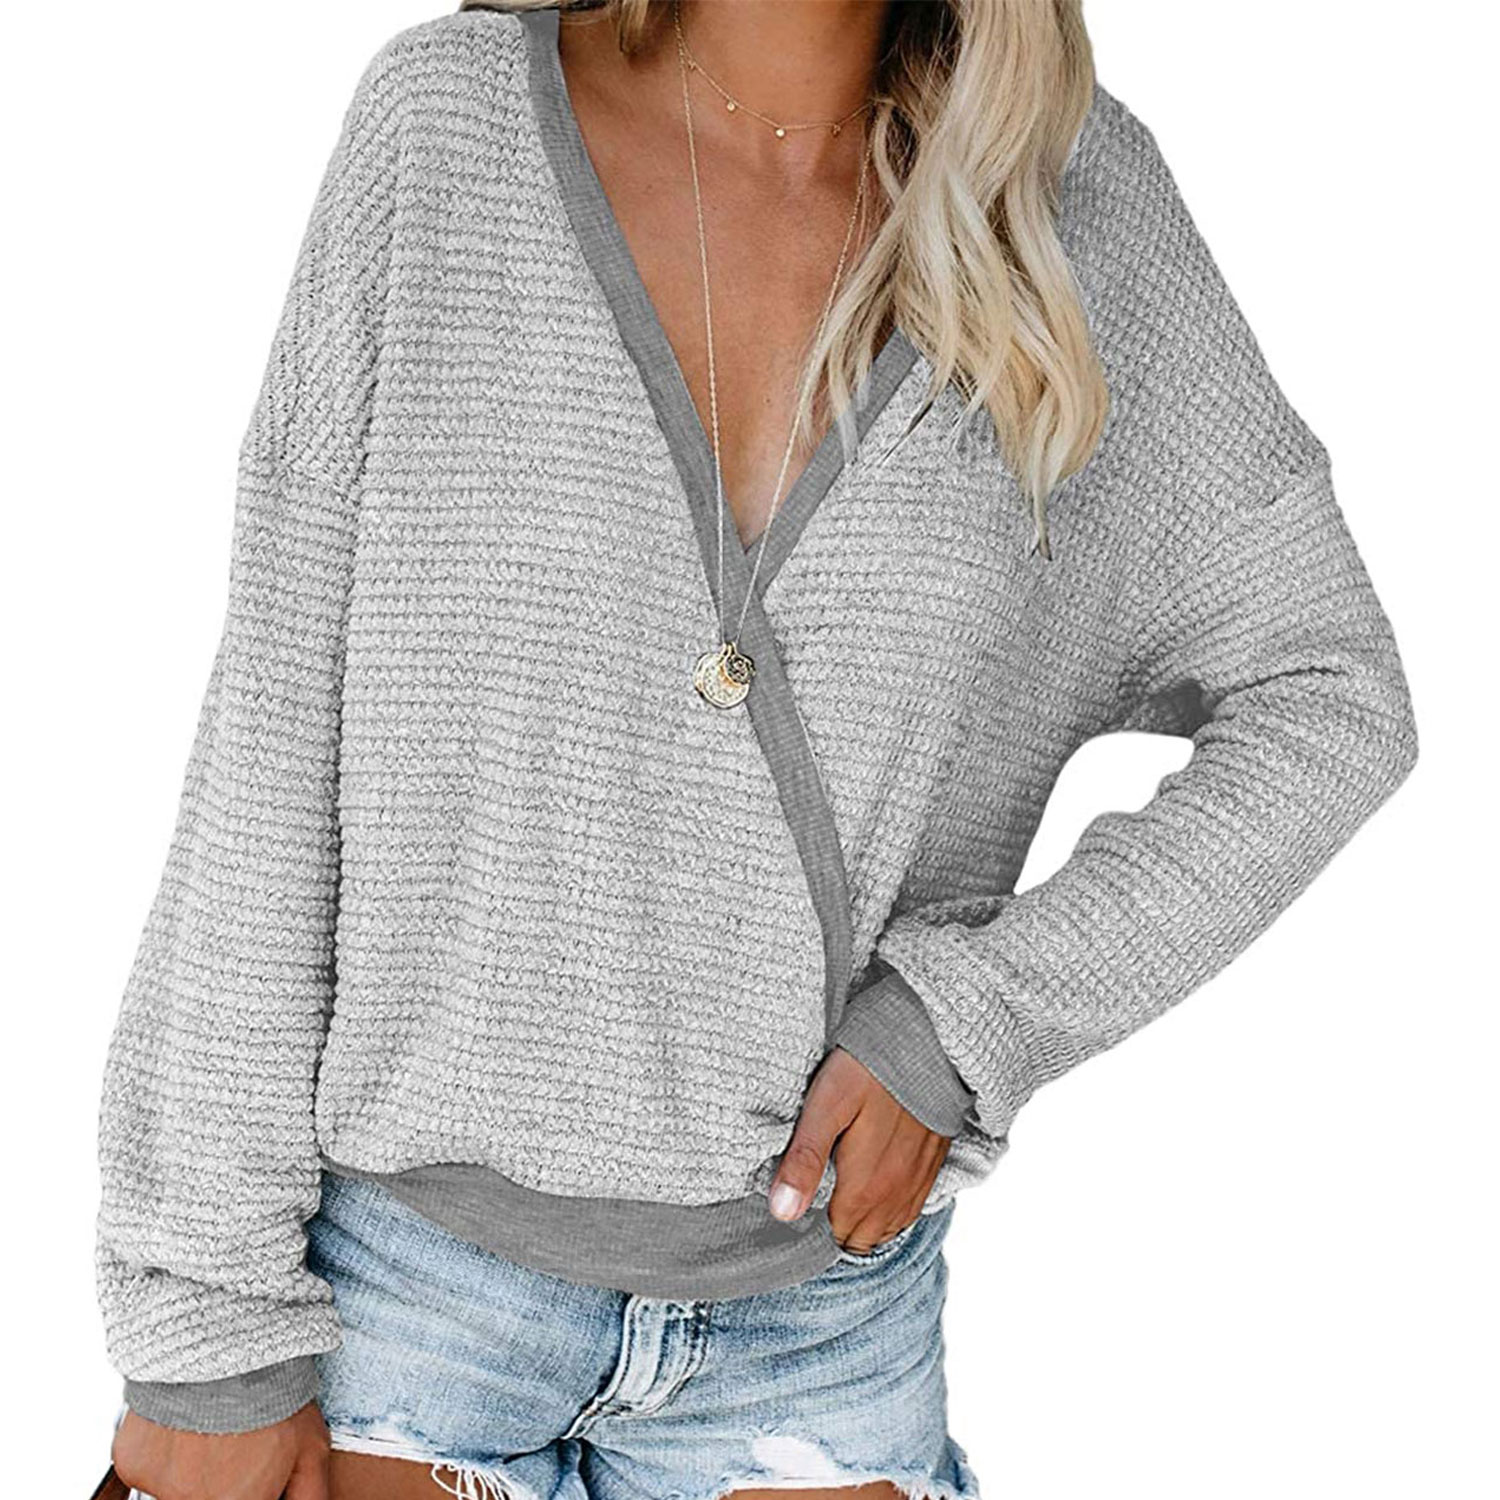 women's deep v-neck wrap sweater long sleeve waffle knit pullover, gray